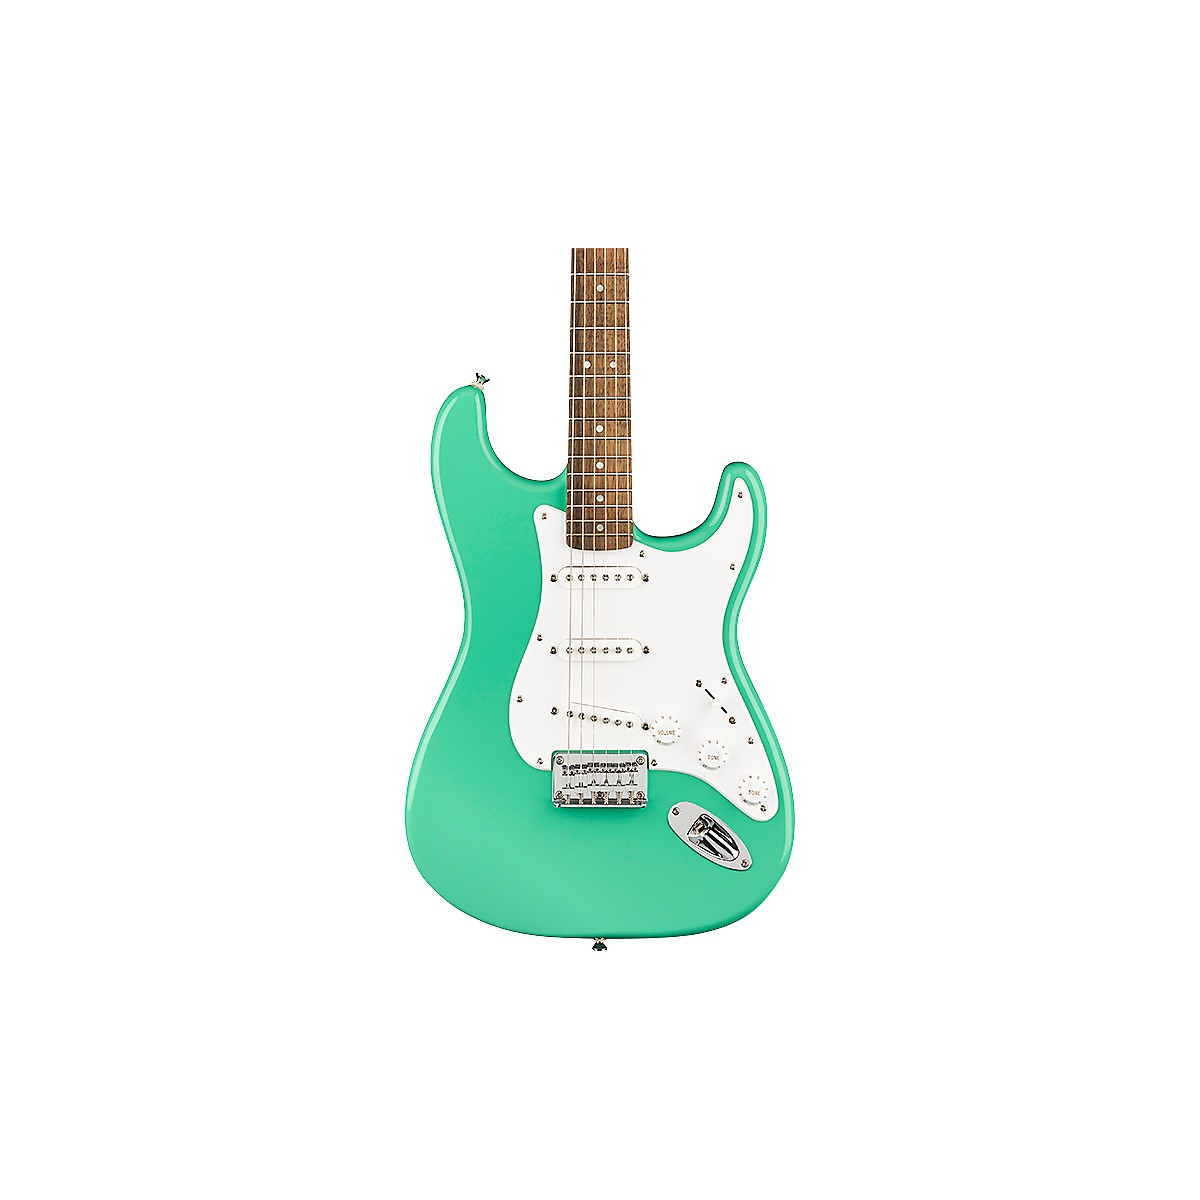 Squier Bullet Stratocaster Hardtail Limited Edition Electric Guitar